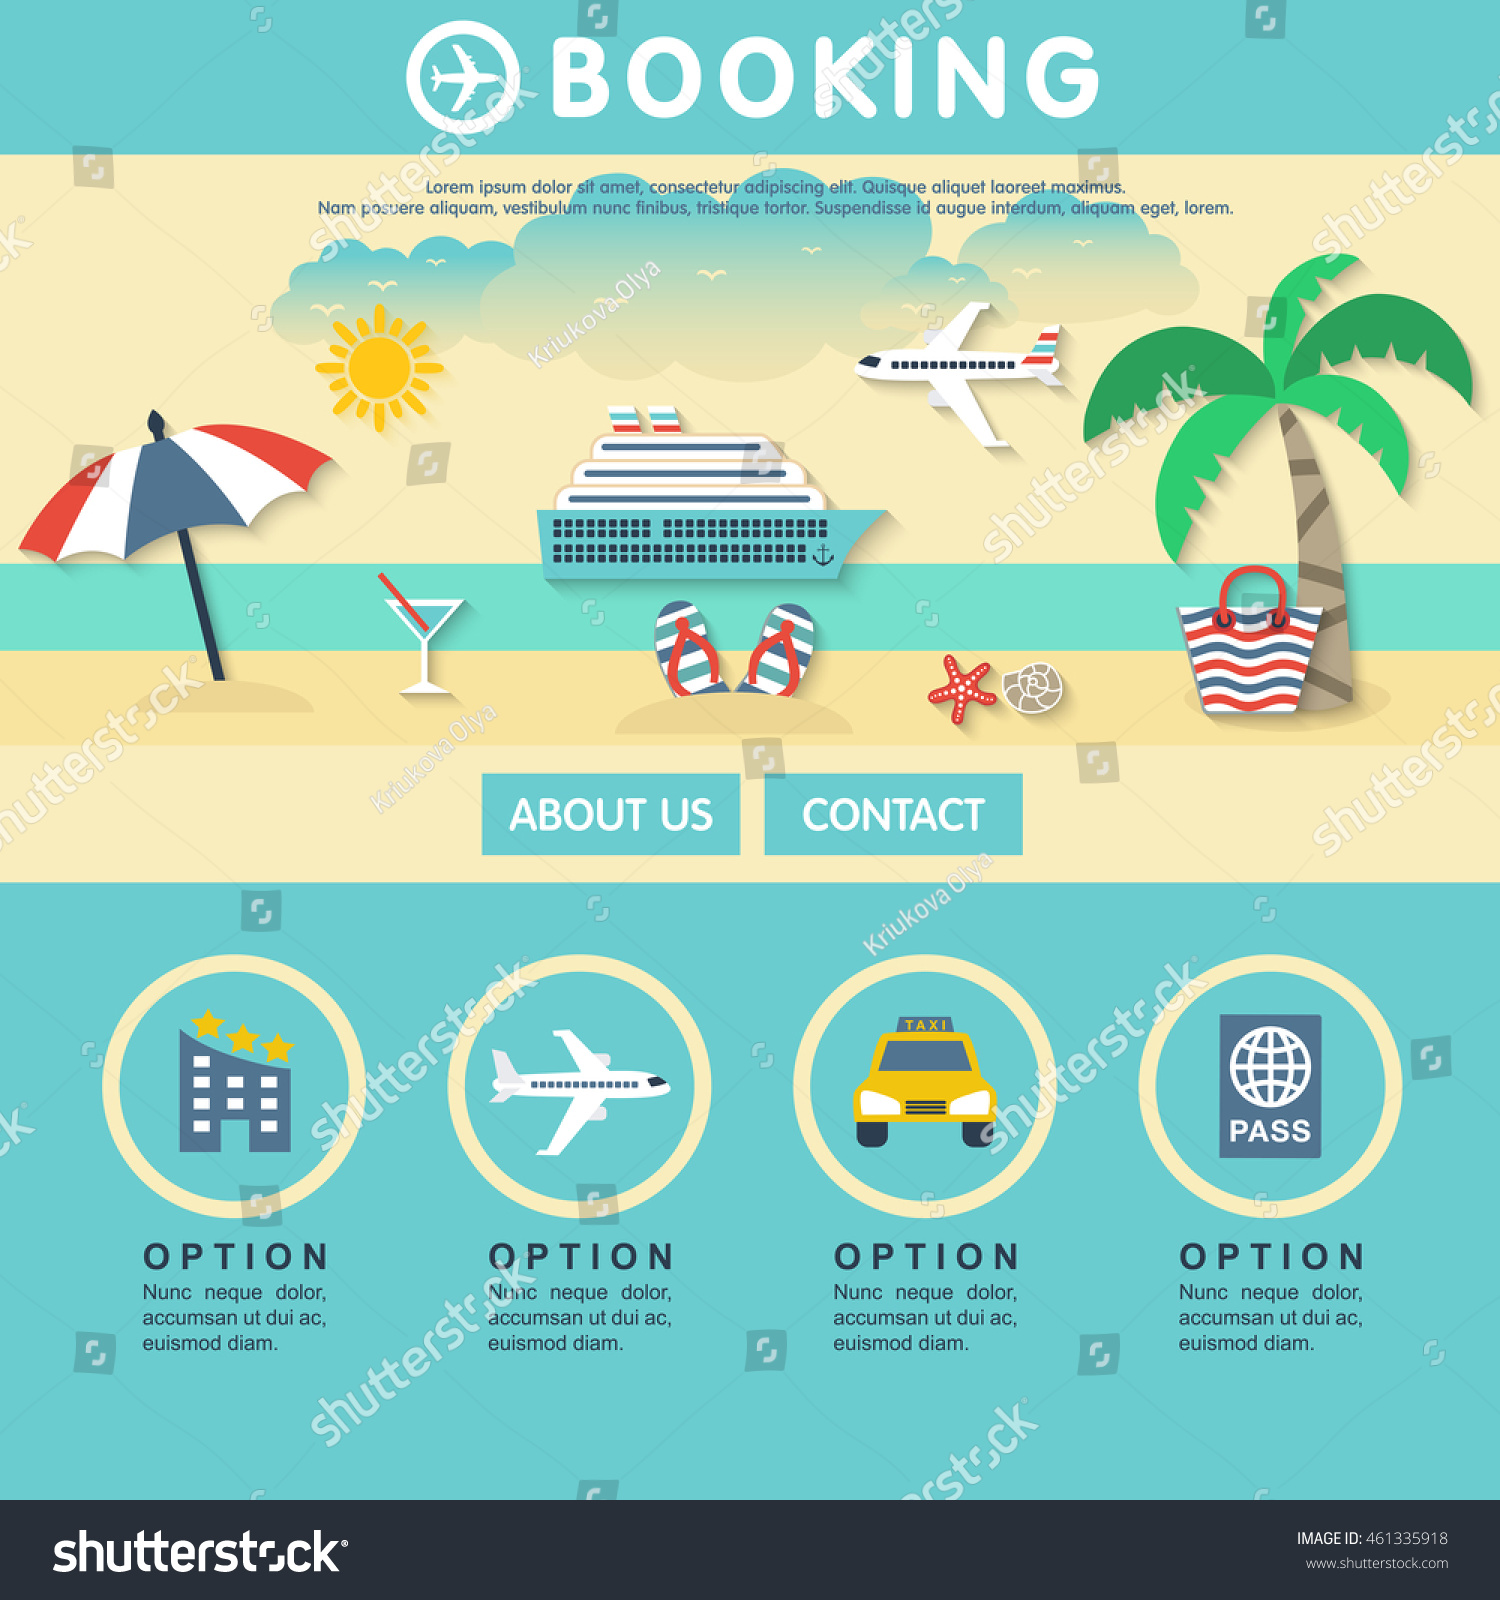 How To Become An Online Booking Travel